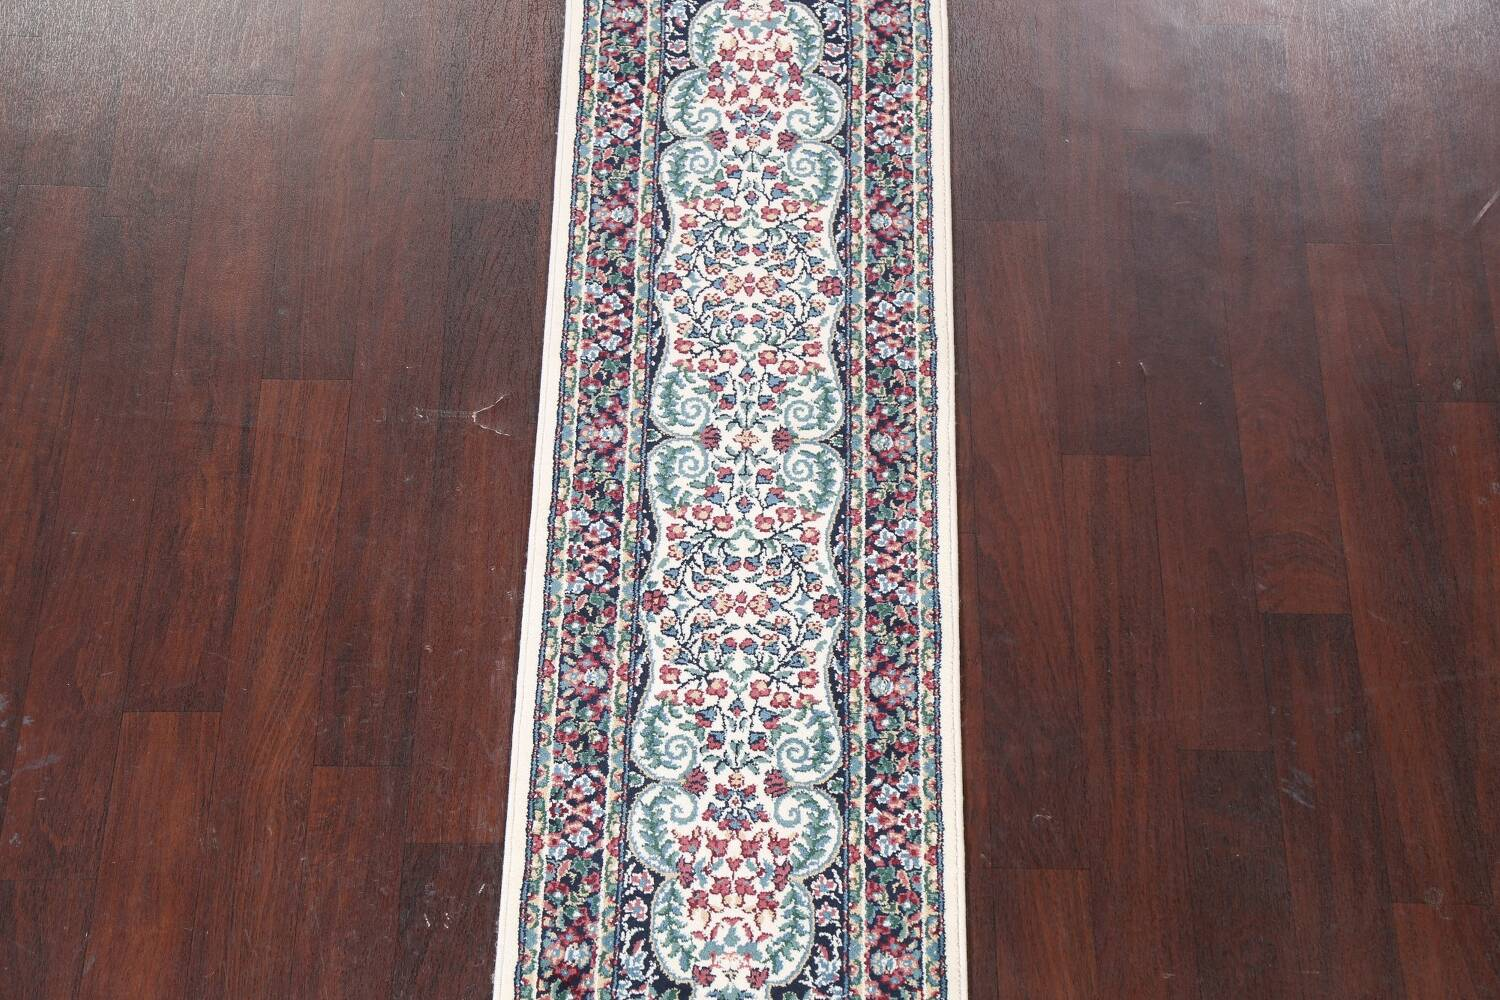 Floral Aubusson Runner Rug 2x8 image 3